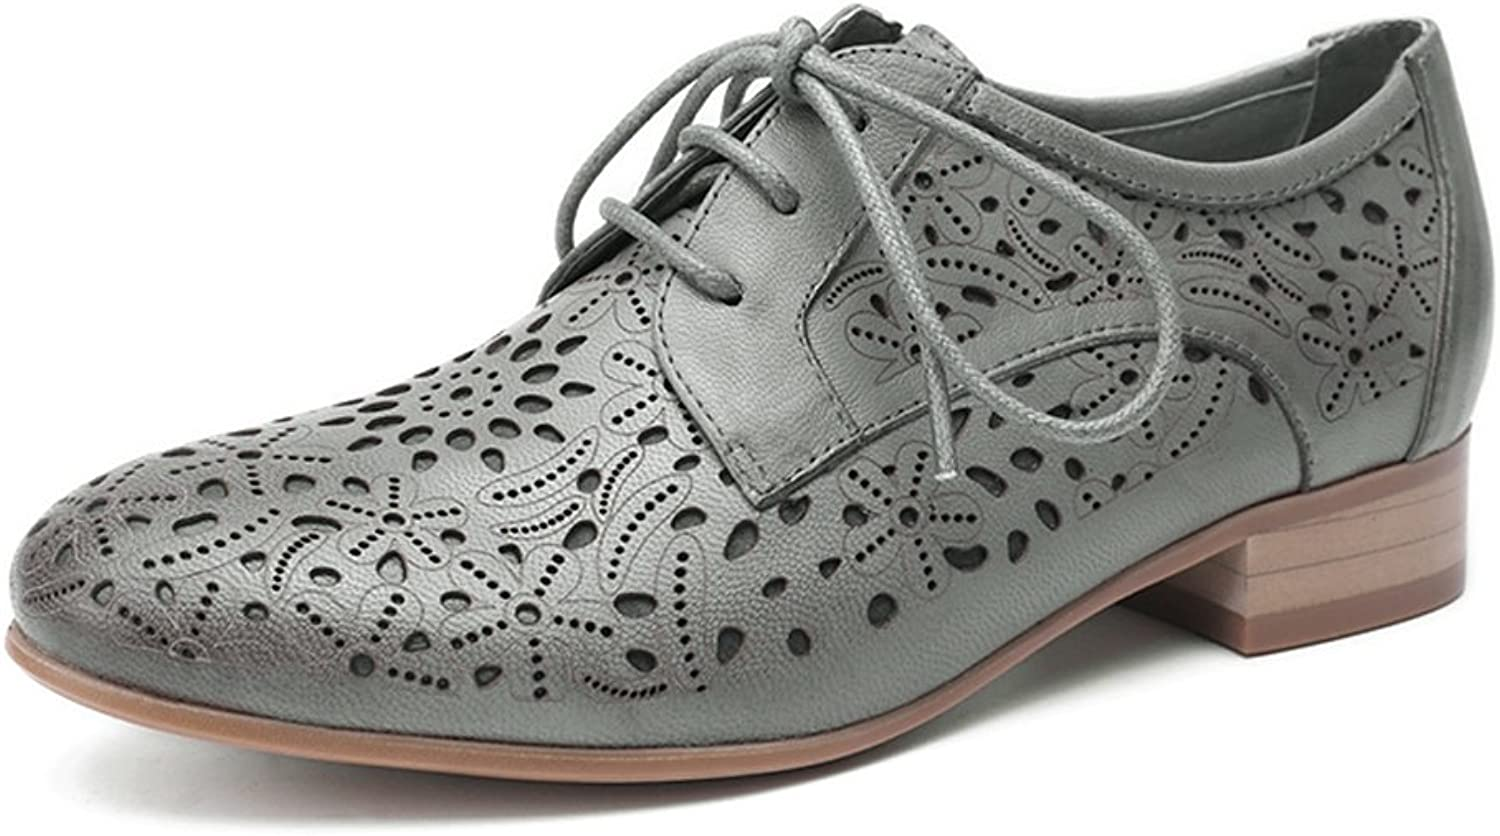 Mona flying Womens Leather Lace-up Dress Oxfords Derby shoes for Womens Ladies Grey